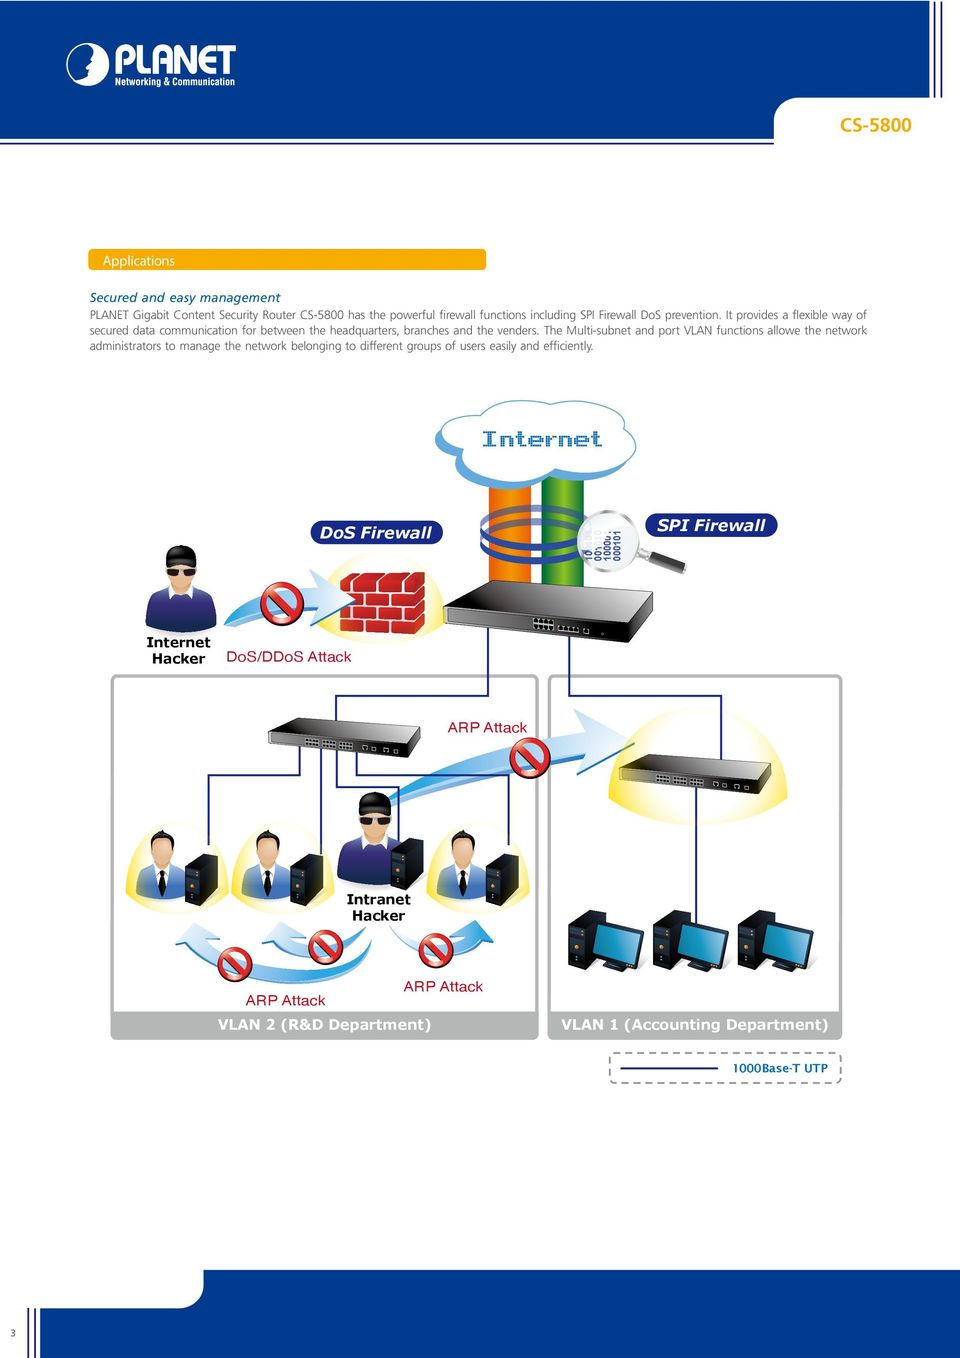 The Multi-subnet and port VLAN functions allowe the network administrators to manage the network belonging to different groups of users easily and efficiently.